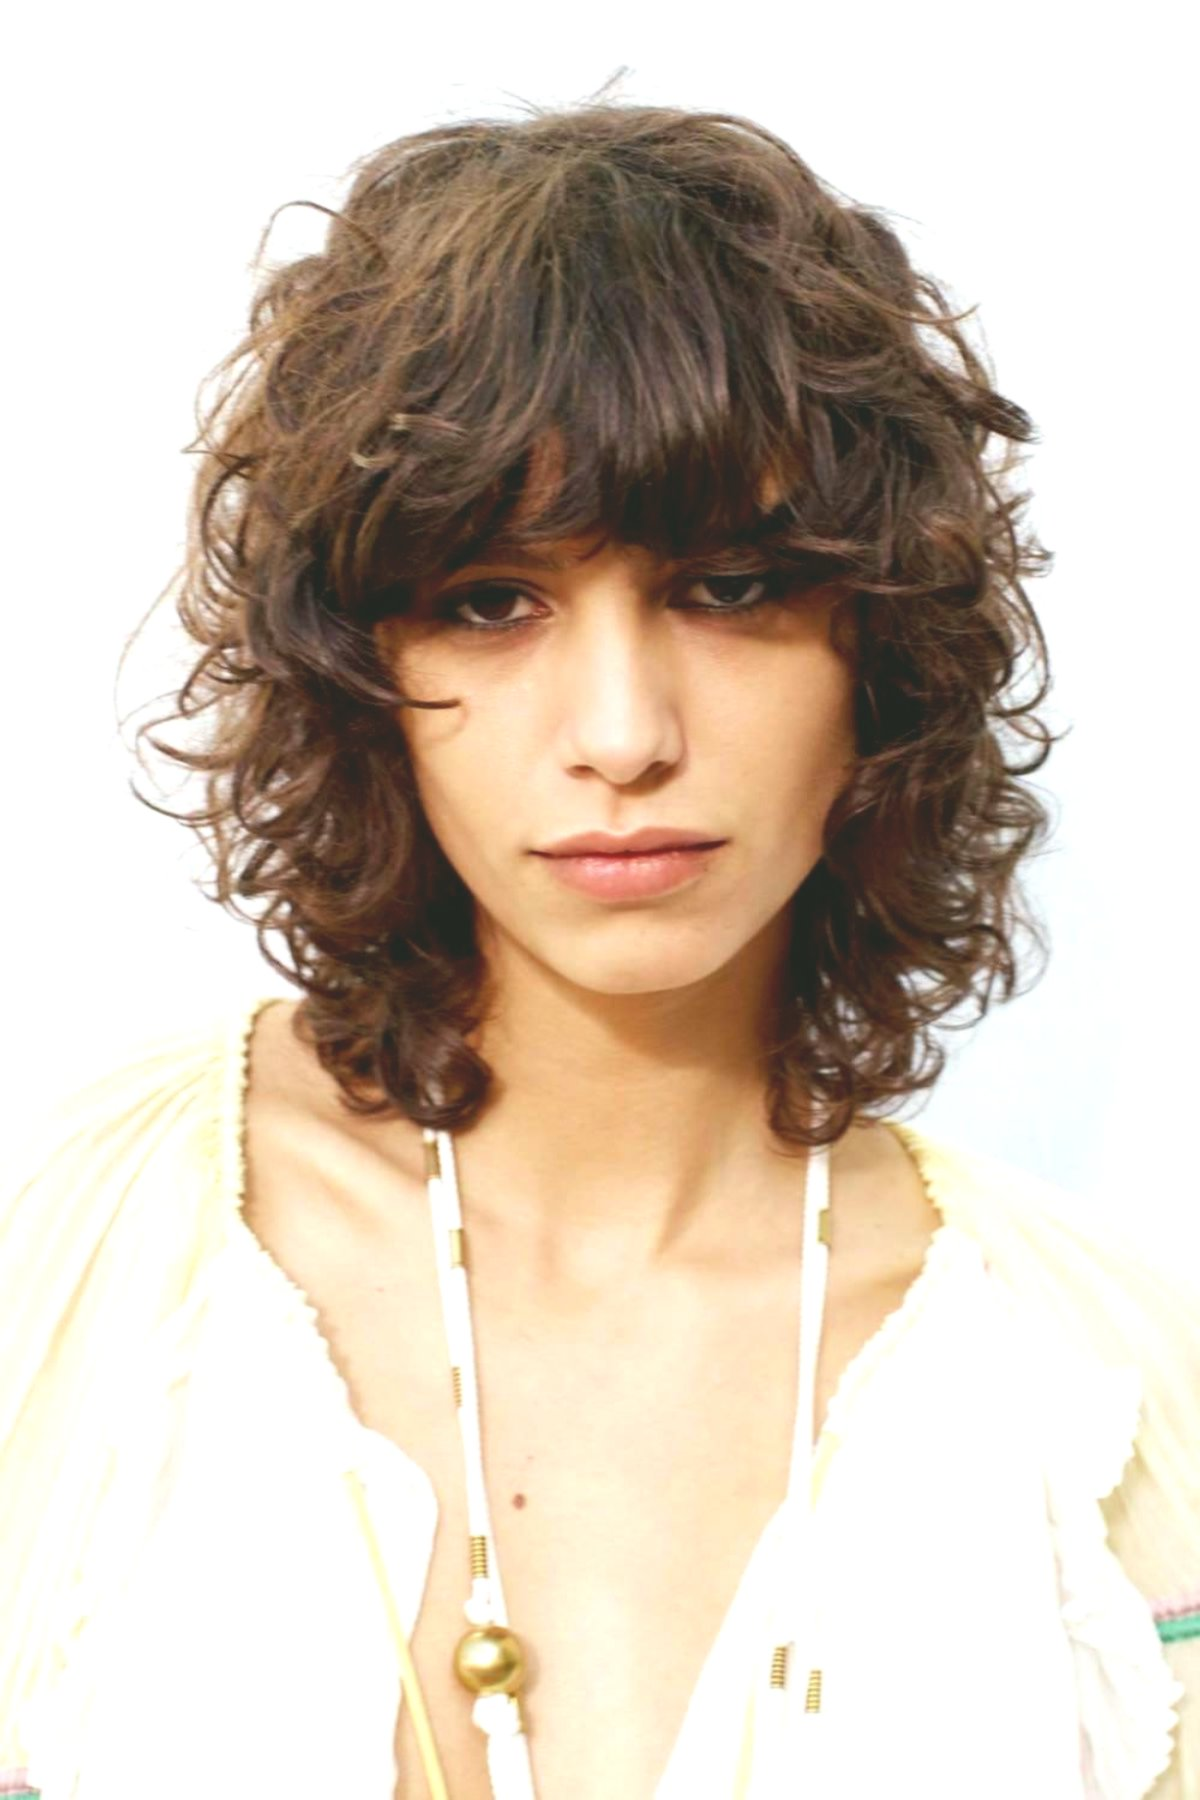 Luxury Short Haircut Concept - Awesome Short Haircut Pattern